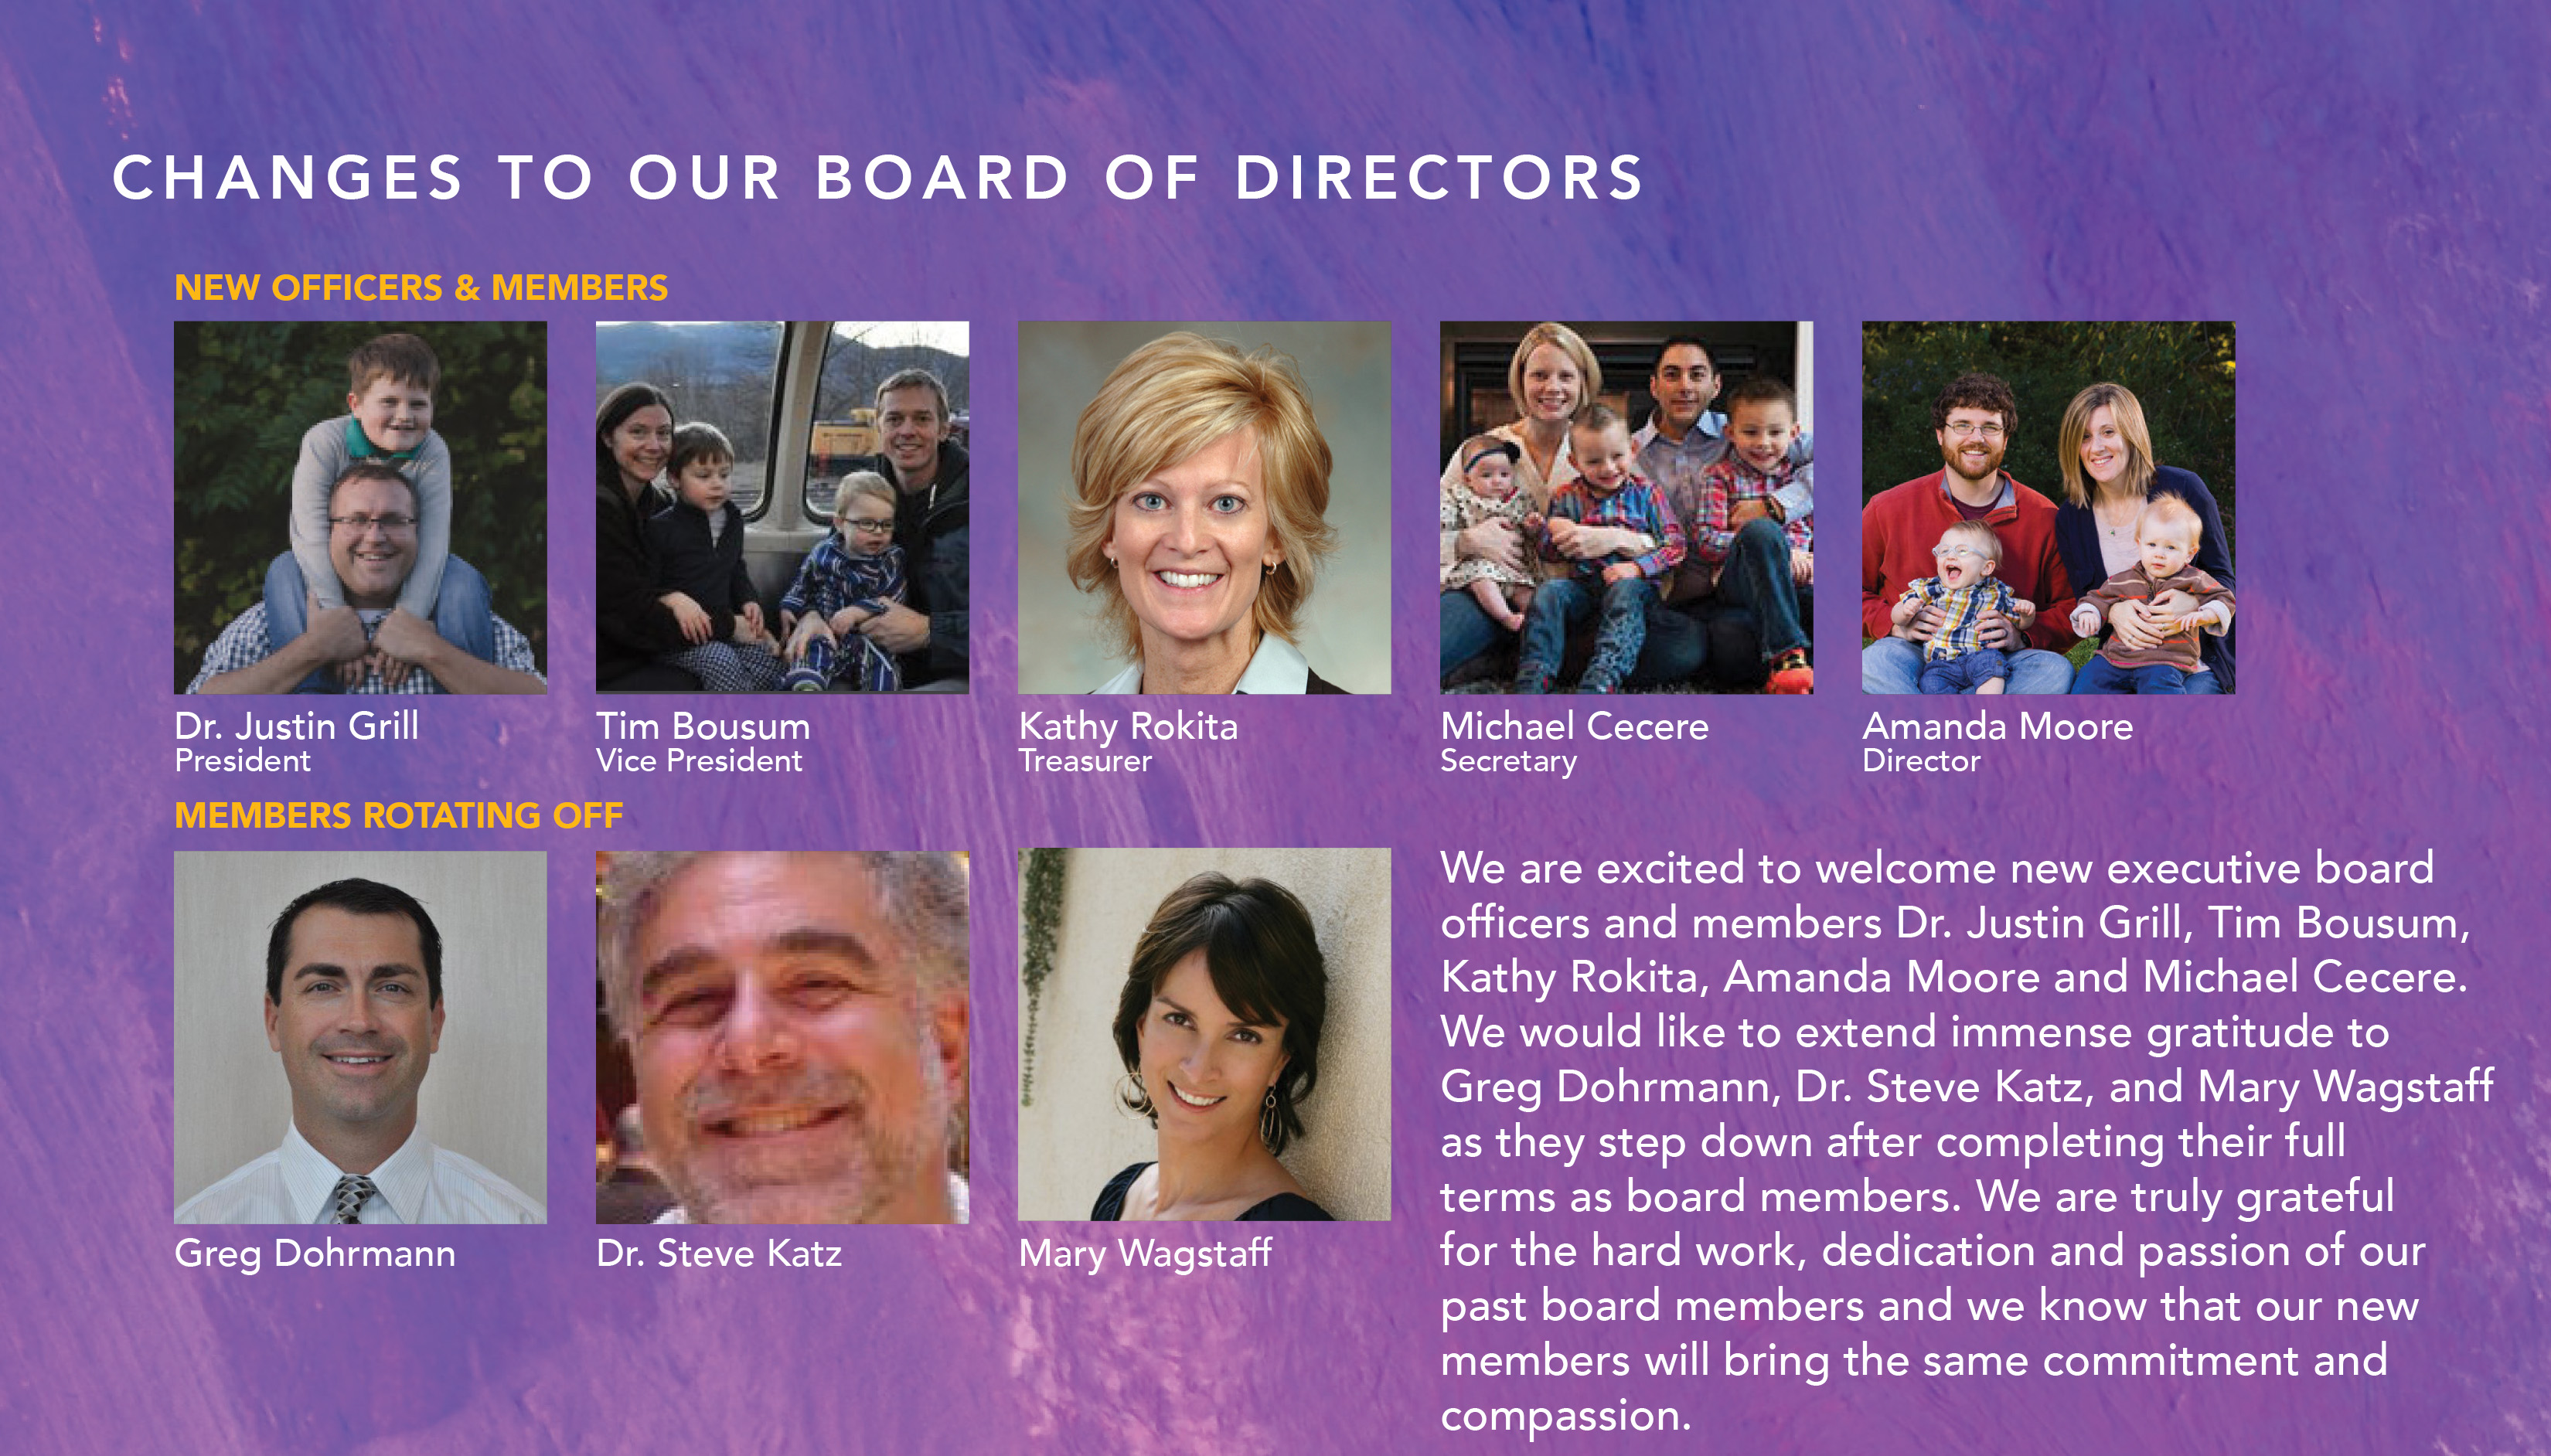 CHANGES TO OUR BOARD OF DIRECTORS